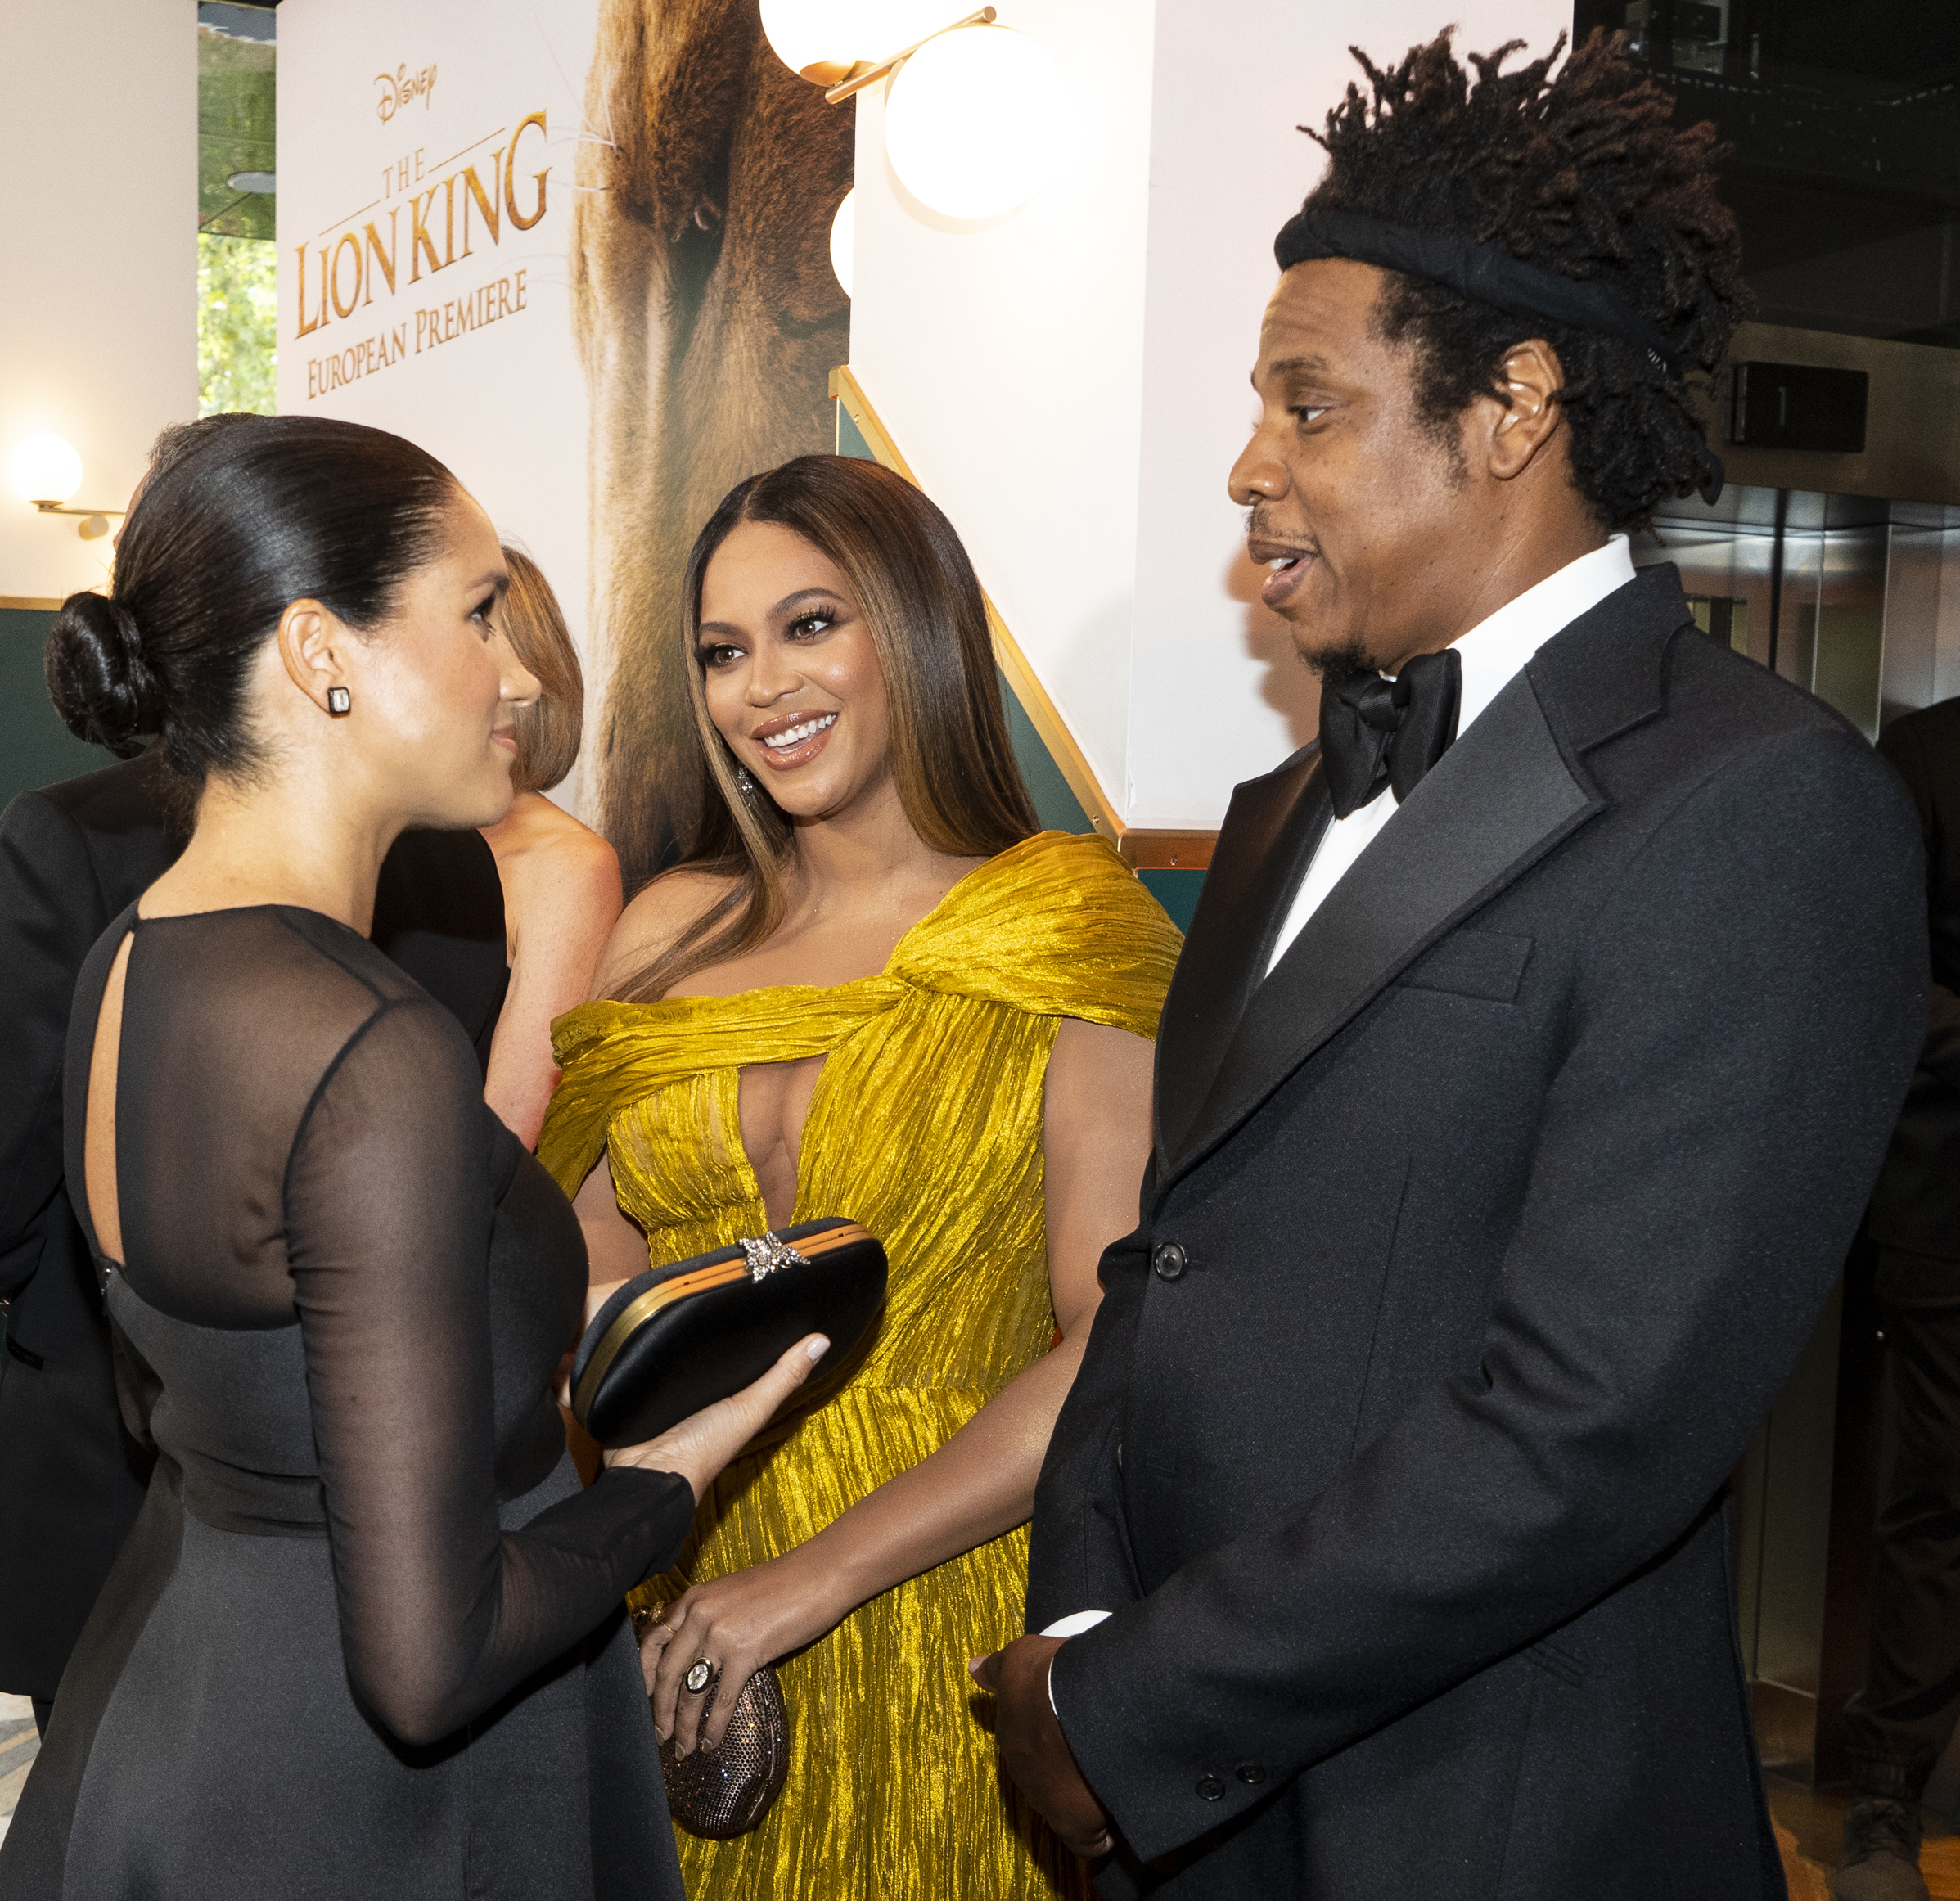 Beyonce and Jay Z checked out London's restaurant scene after the Lion King premiere — here they are with Meghan Markle, Duchess of Sussex